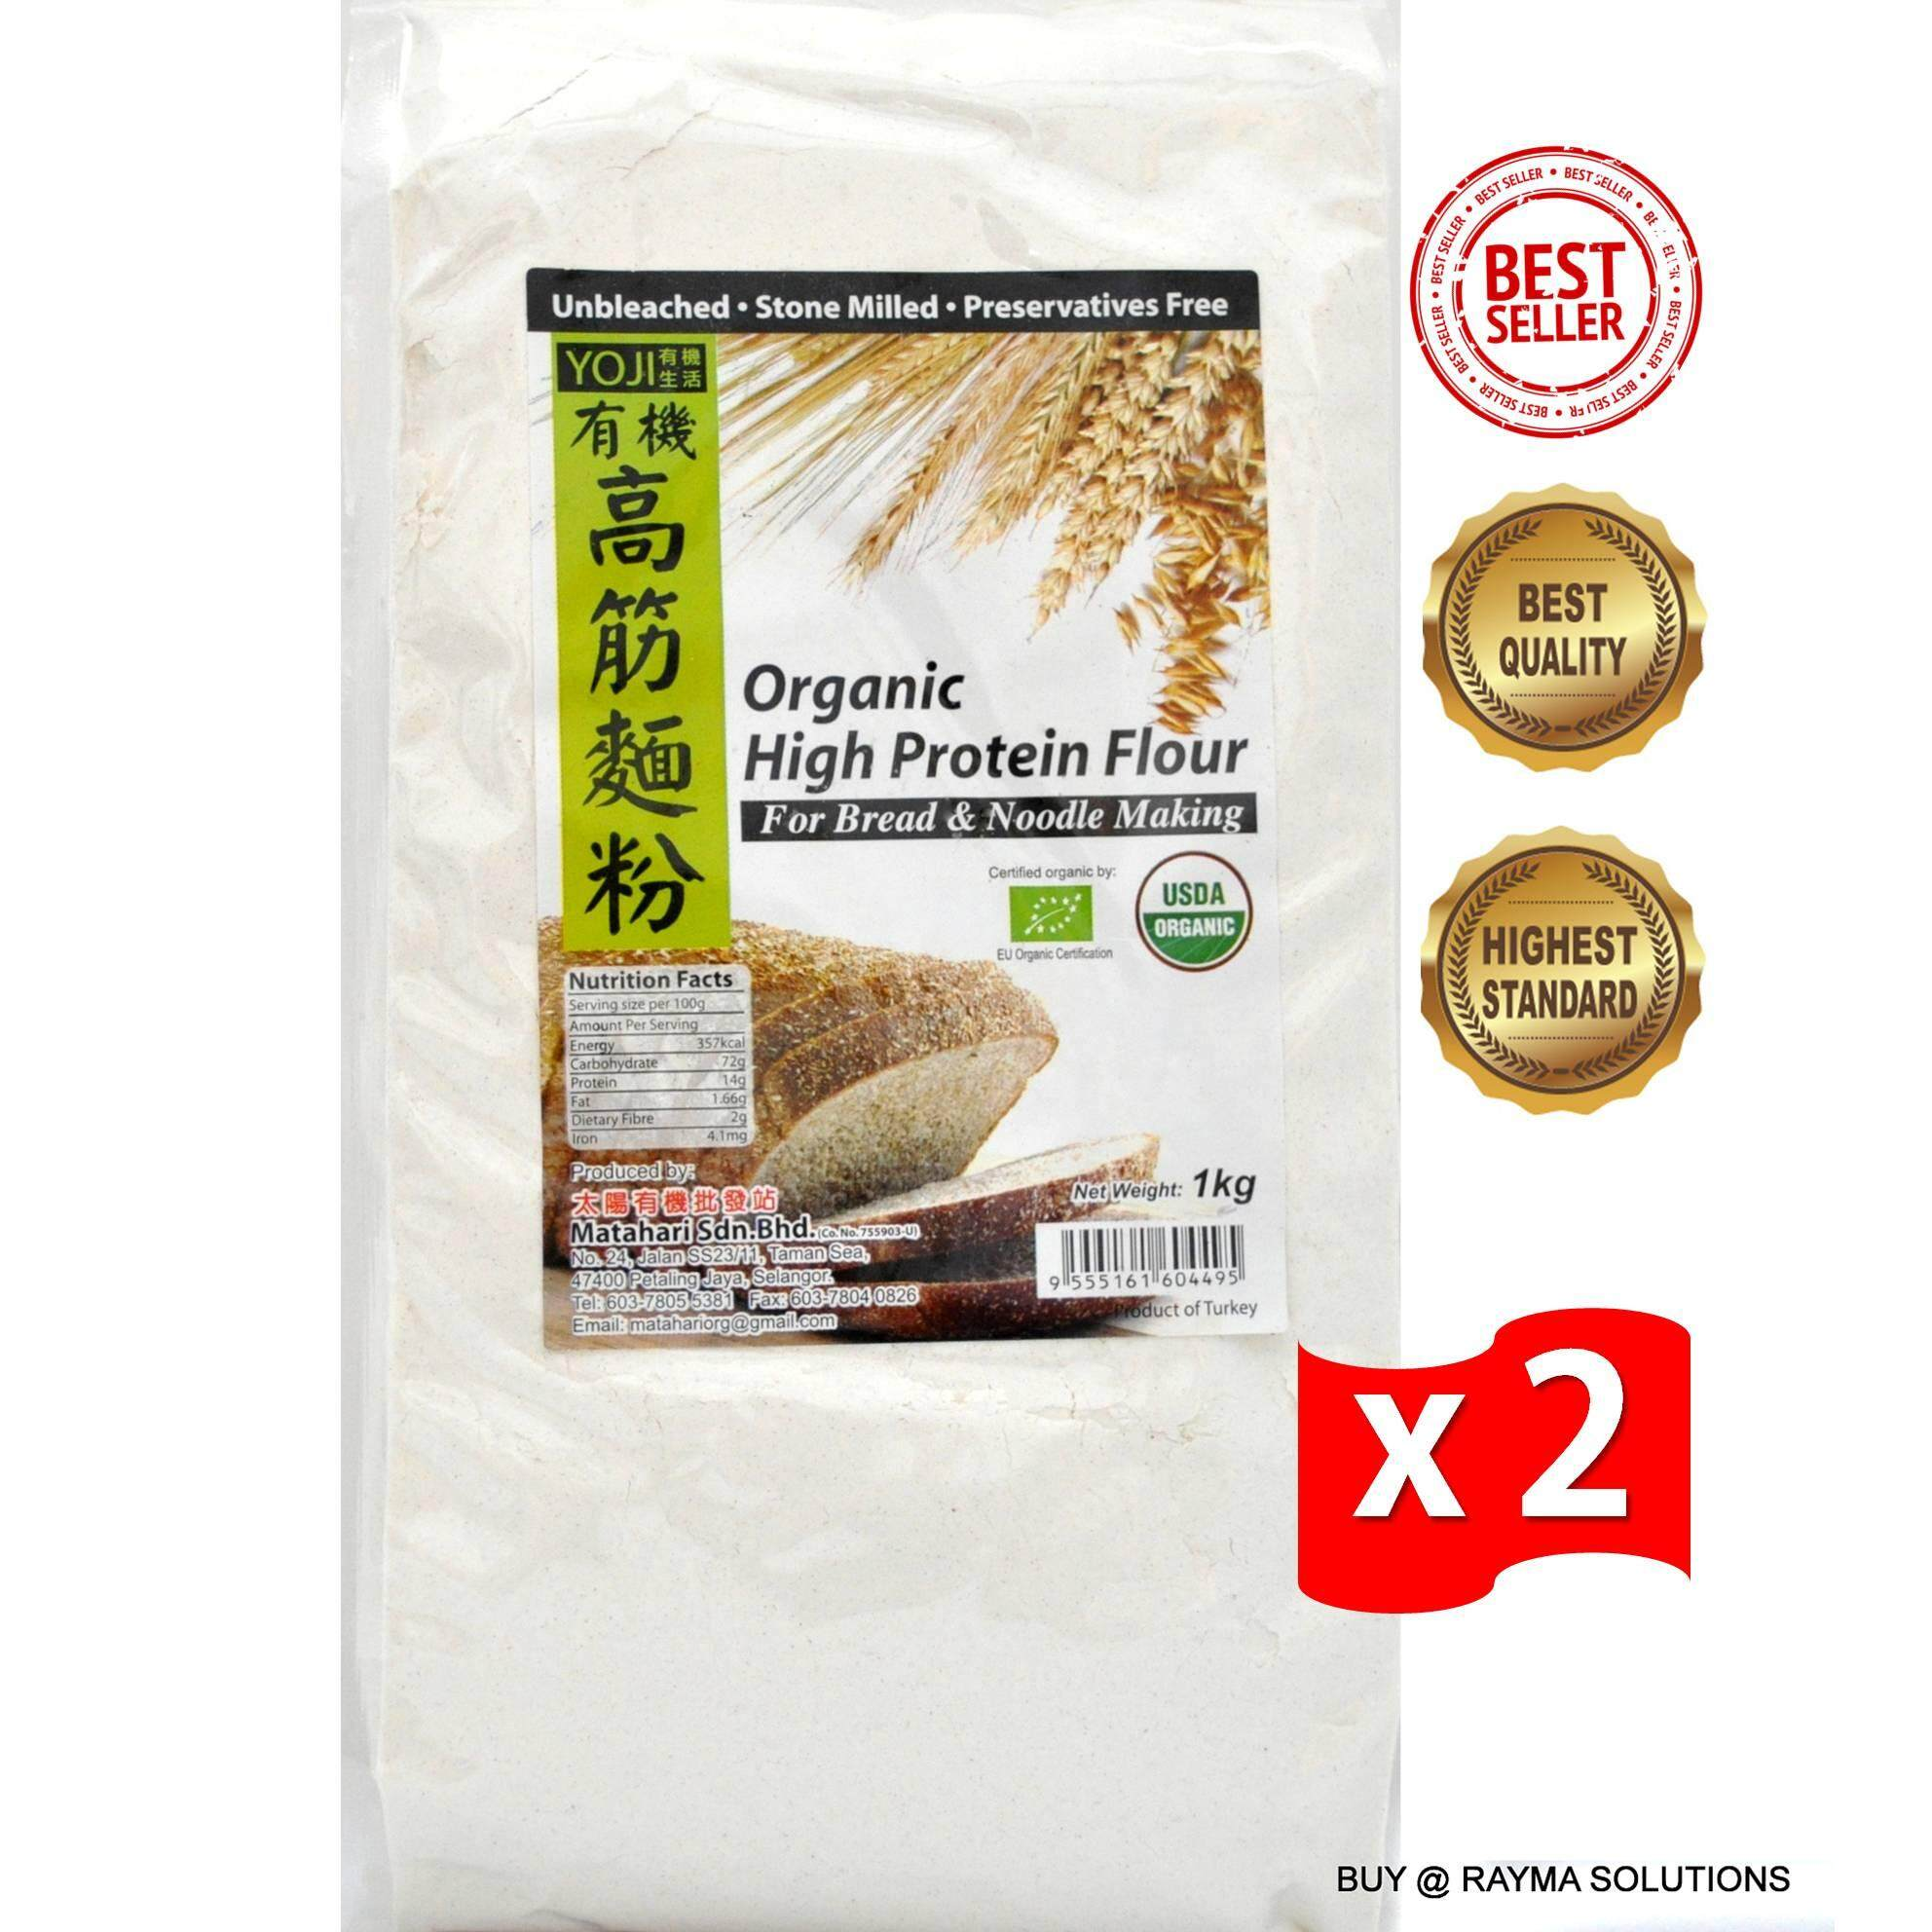 [Best Deal] MH FOOD Organic High Protein Flour, for Bread and Noodle Making, 1kg (6 Packs)